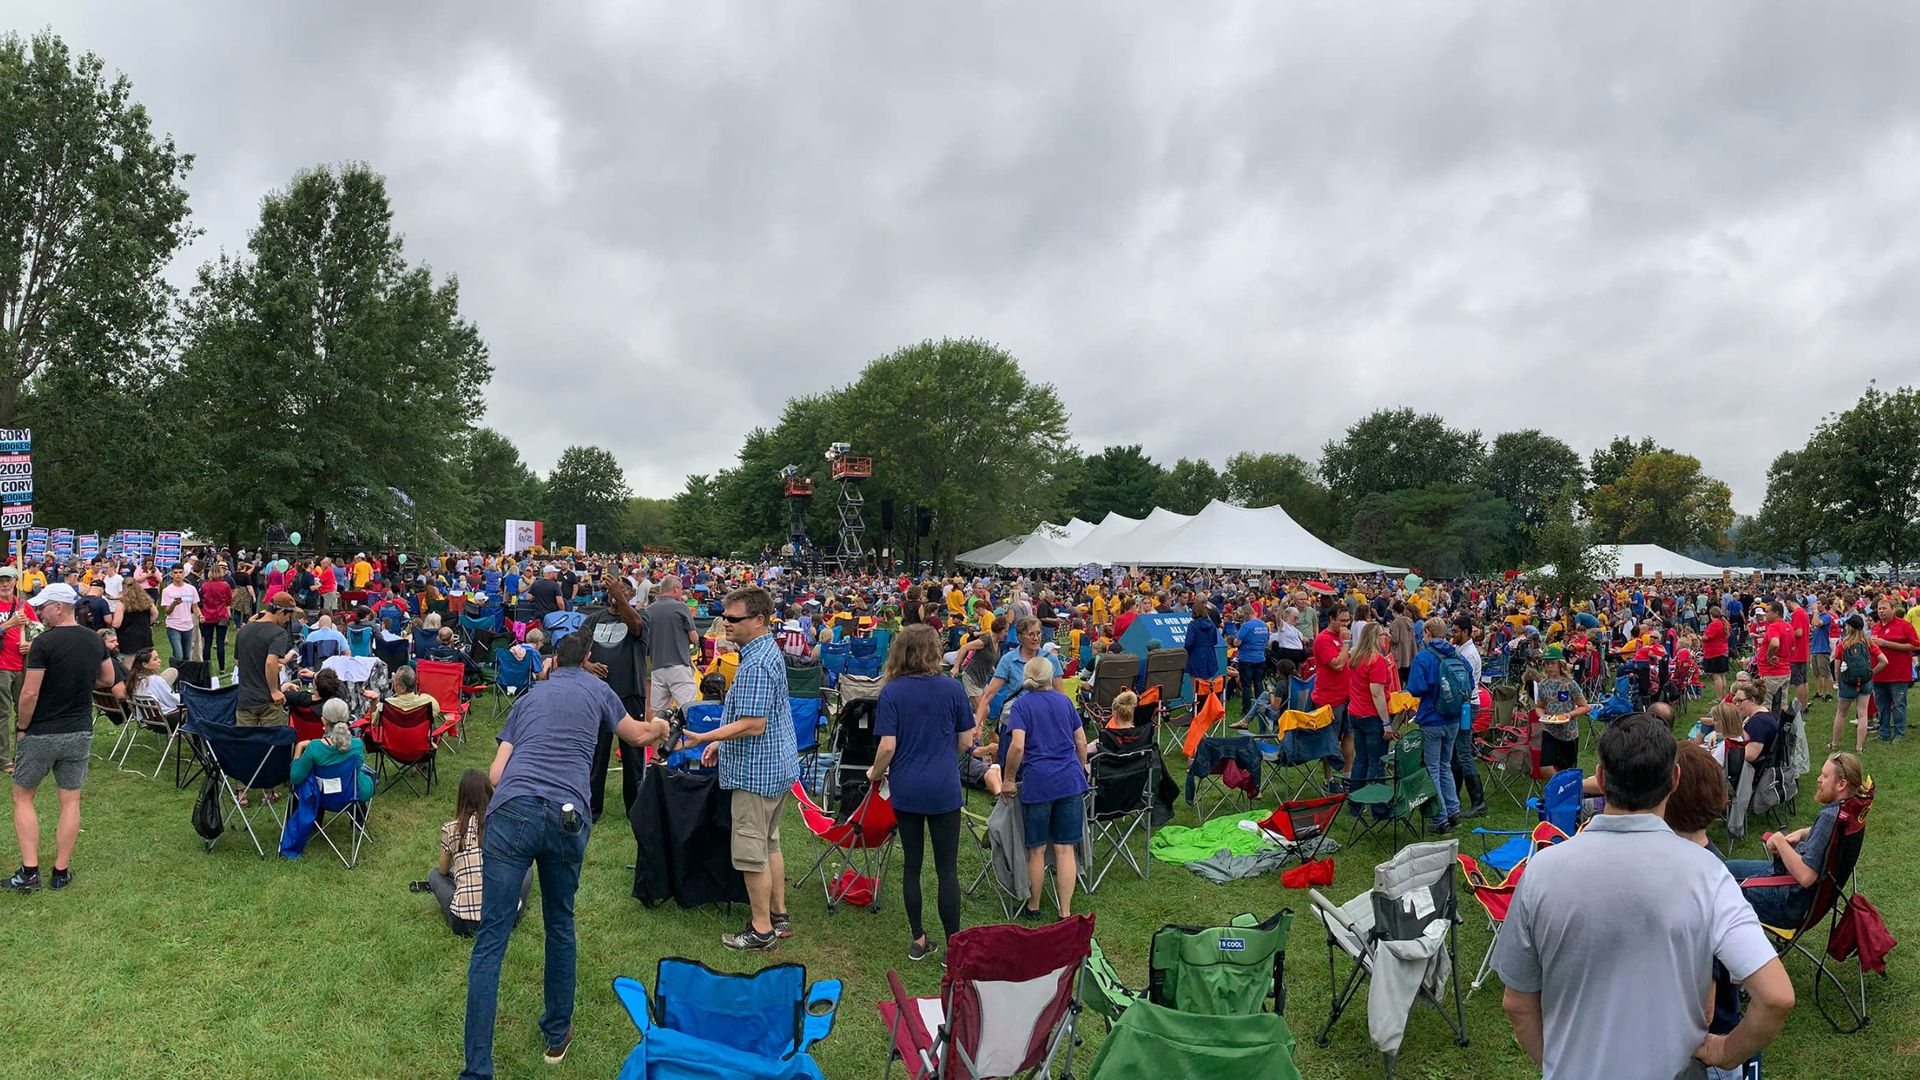 The crowd at the Polk County Democrats' Steak Fry in Des Moines, Iowa, Saturday.